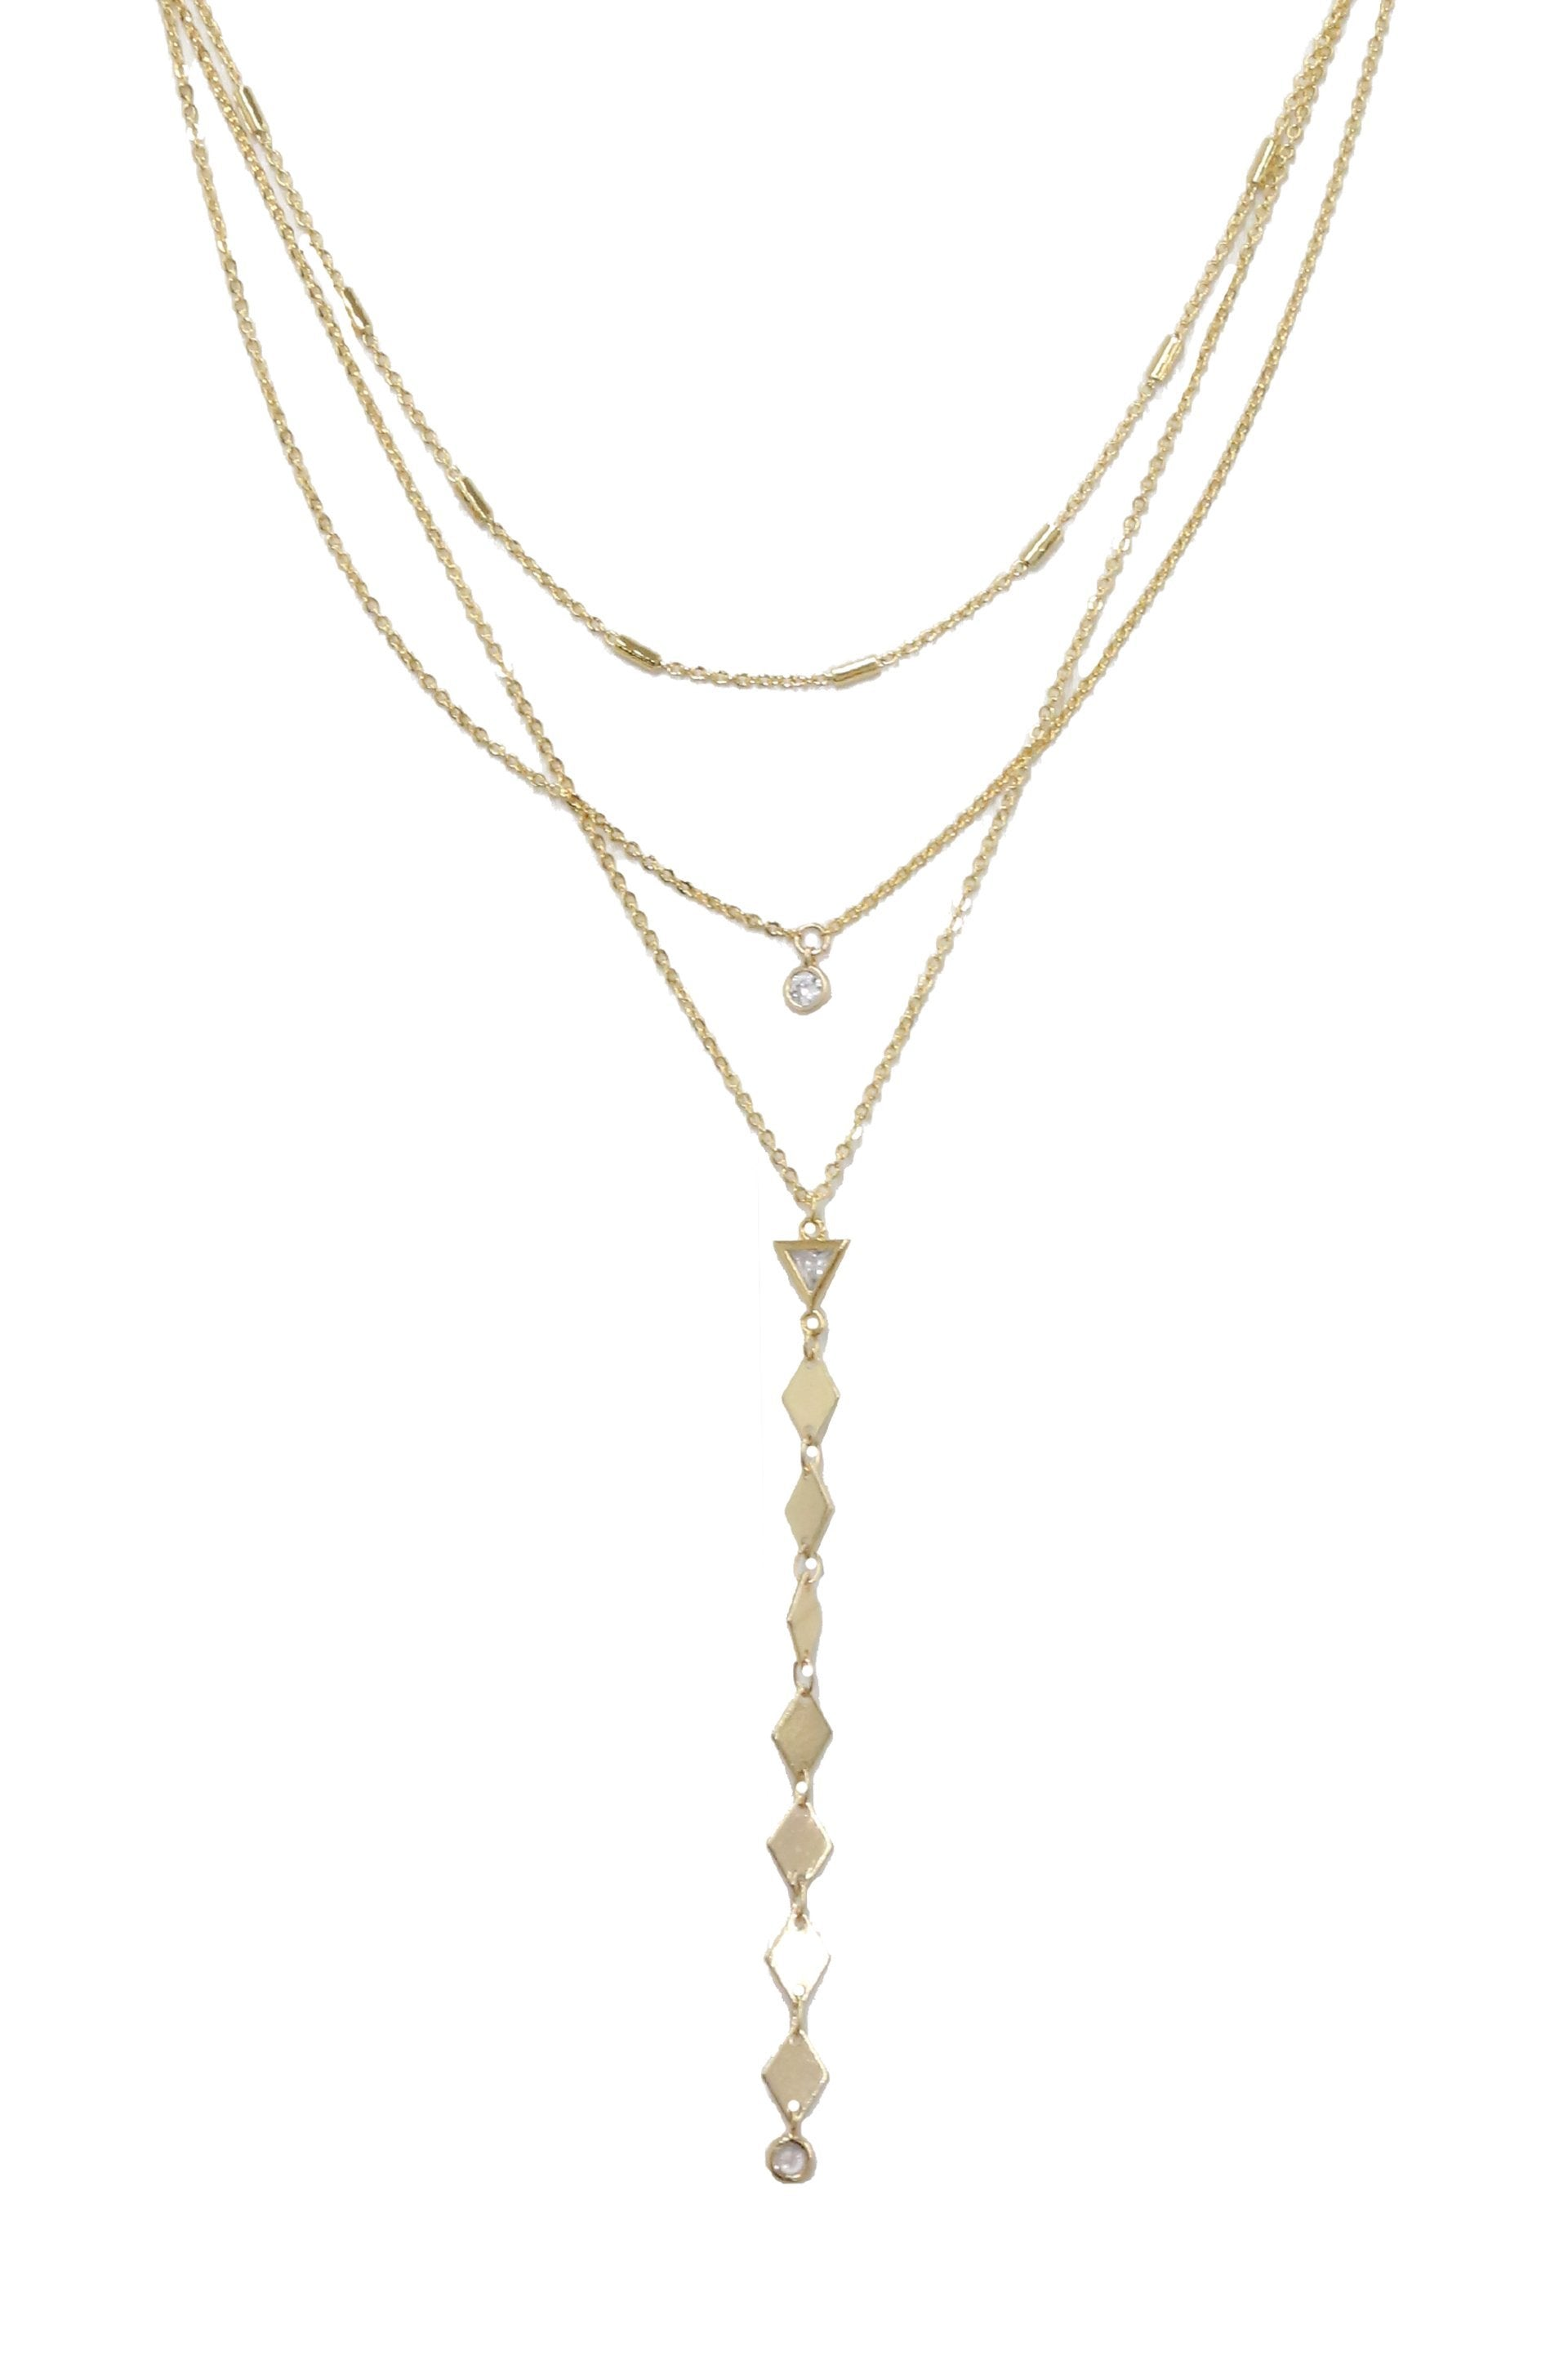 Bella 18k Gold Plated Multi Layered Lariat Necklace with Crystals